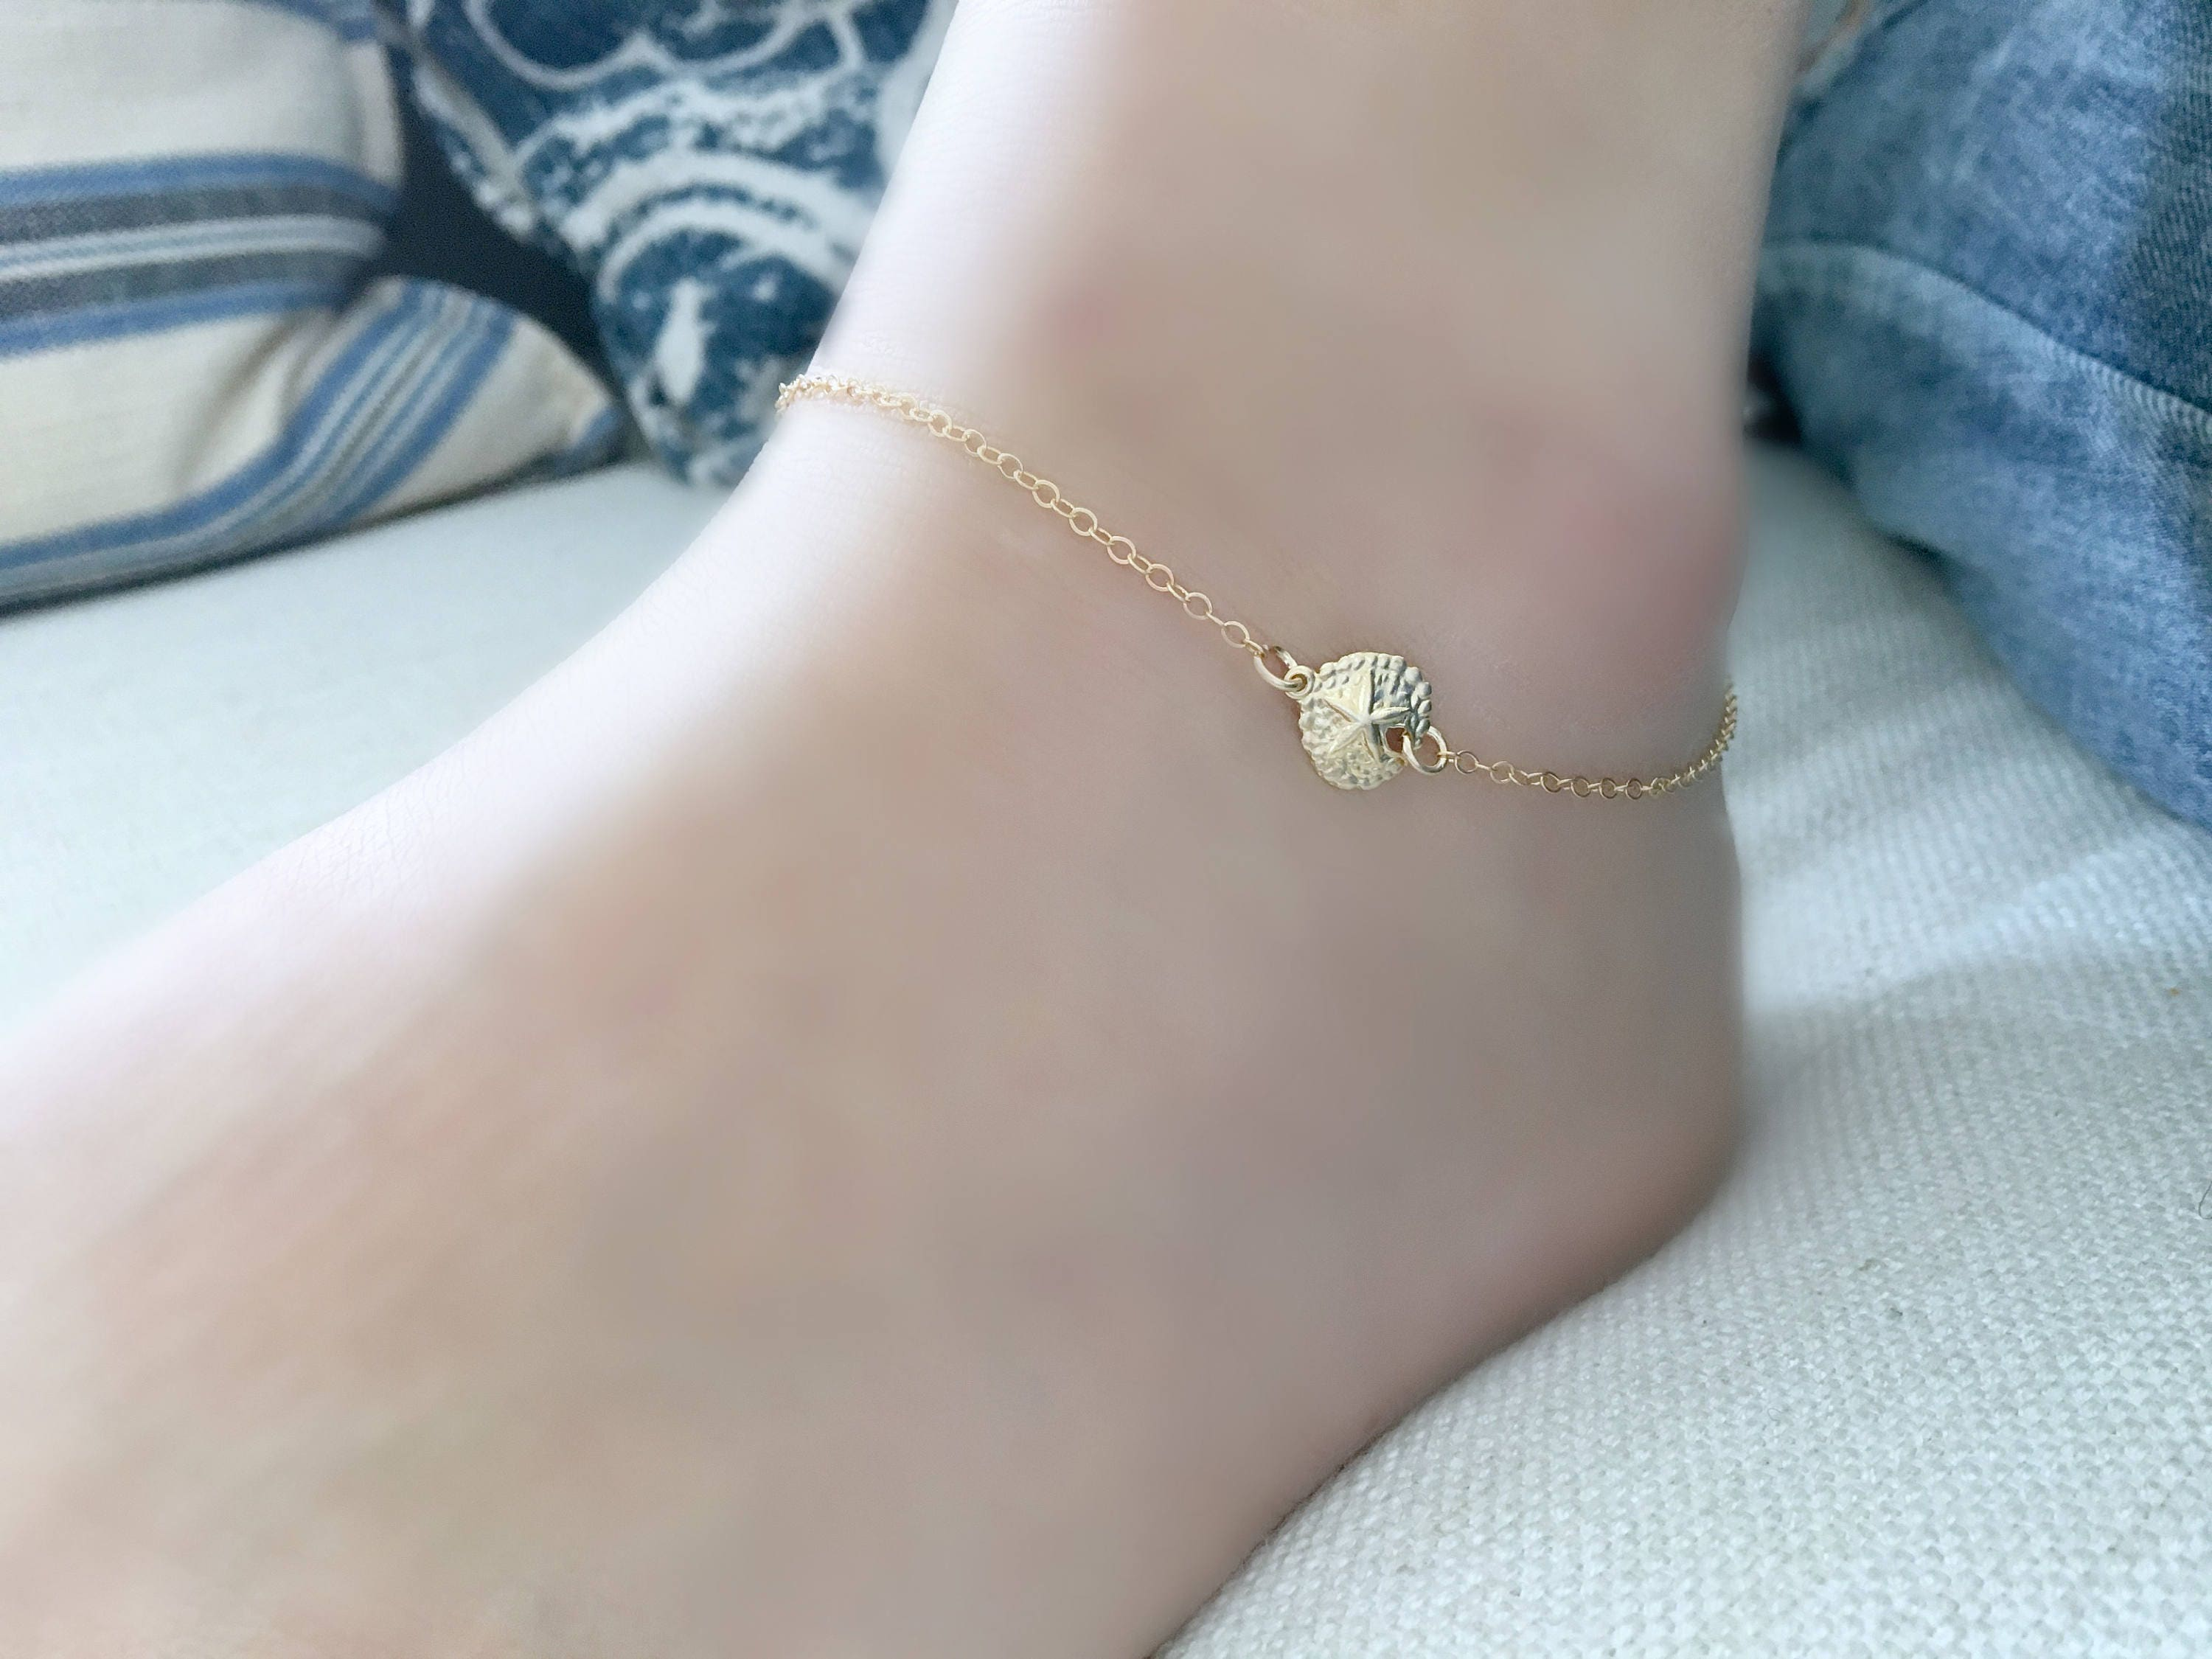 tie tears bracelet teen jewellery listing girl mermaids simple glass il fullxfull woman sea anklet ankle cotton bracelets beach present wish